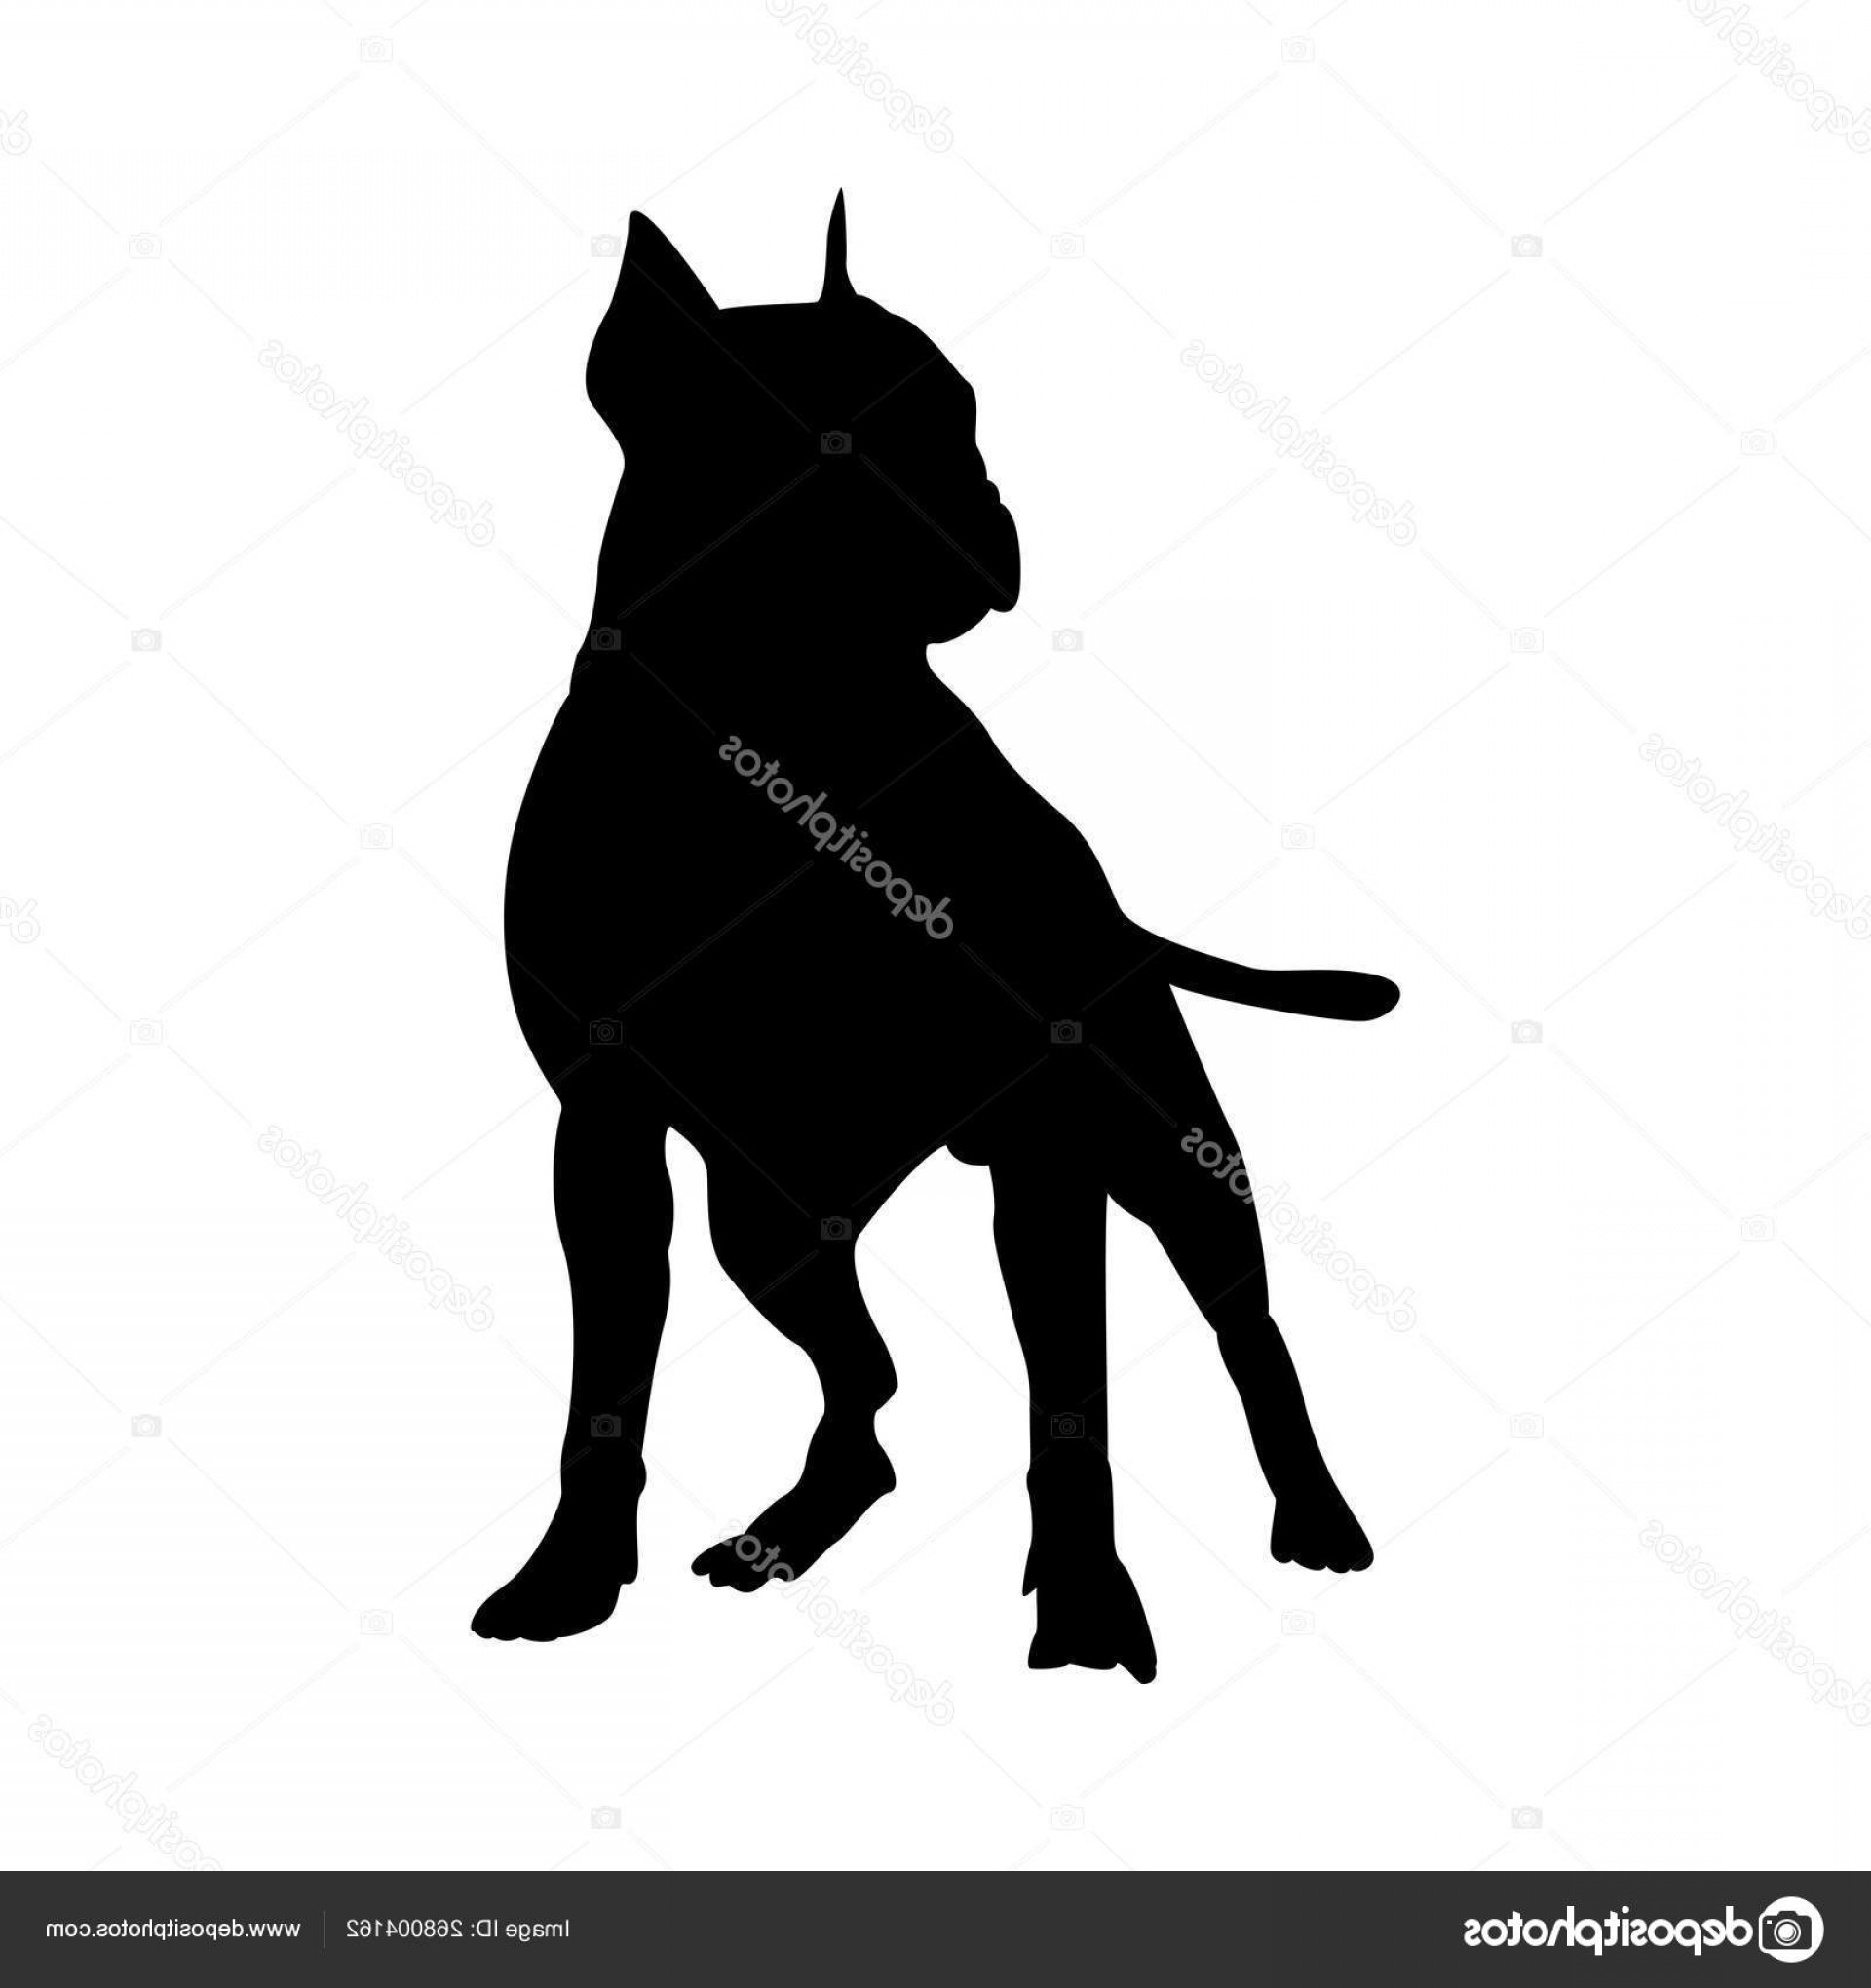 Pit Silhouette Vector: Stock Illustration Pit Bull Terrier Dog Silhouette